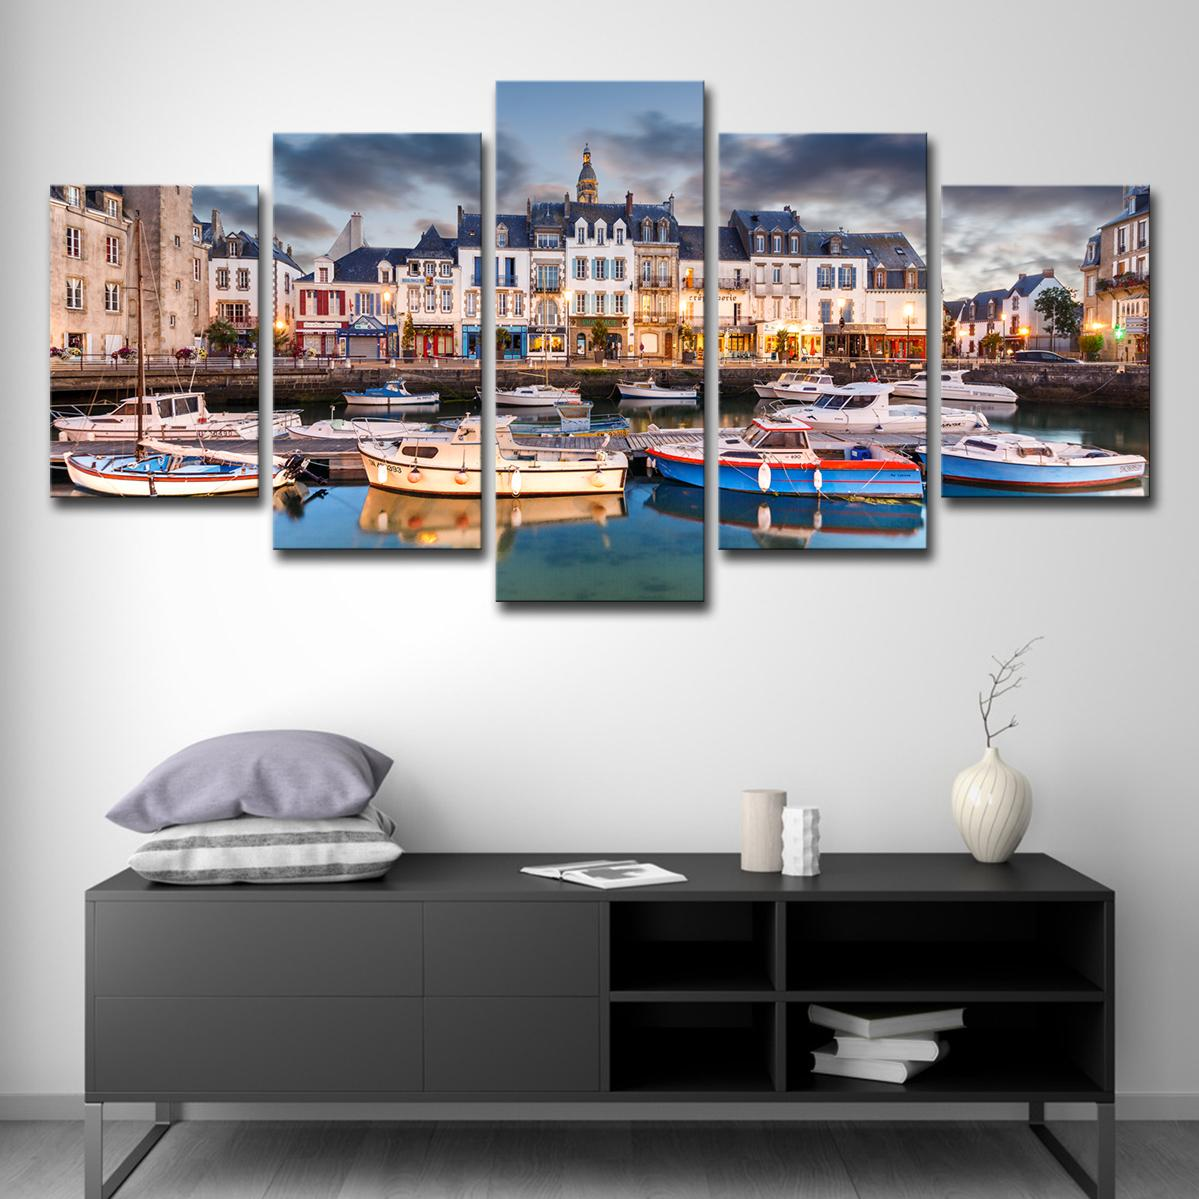 57844e591abf 2019 Modern Home Wall Decor Art Canvas Pictures Frame HD Printed Posters  France City Building Boats Sights Paintings From Xmqh2017